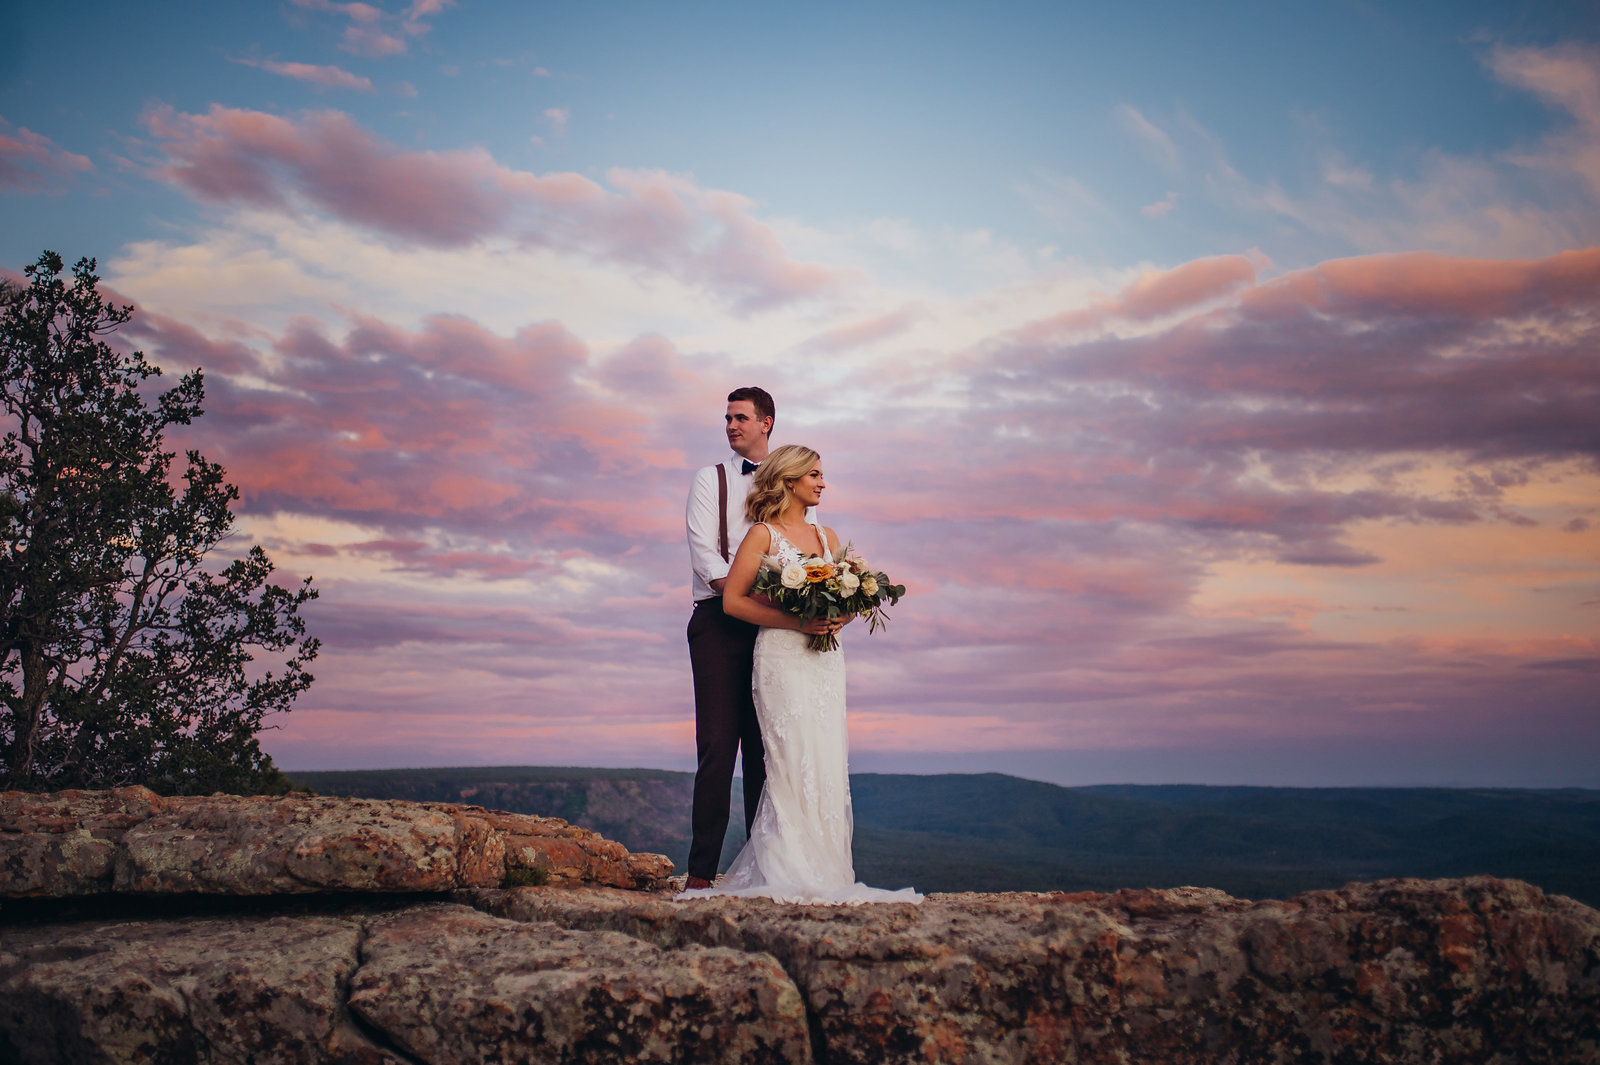 Gorgeous Elopement on the Mogollon Rim right outside of Payson, Arizona | Rusty Metals Photography - Arizona Elopements